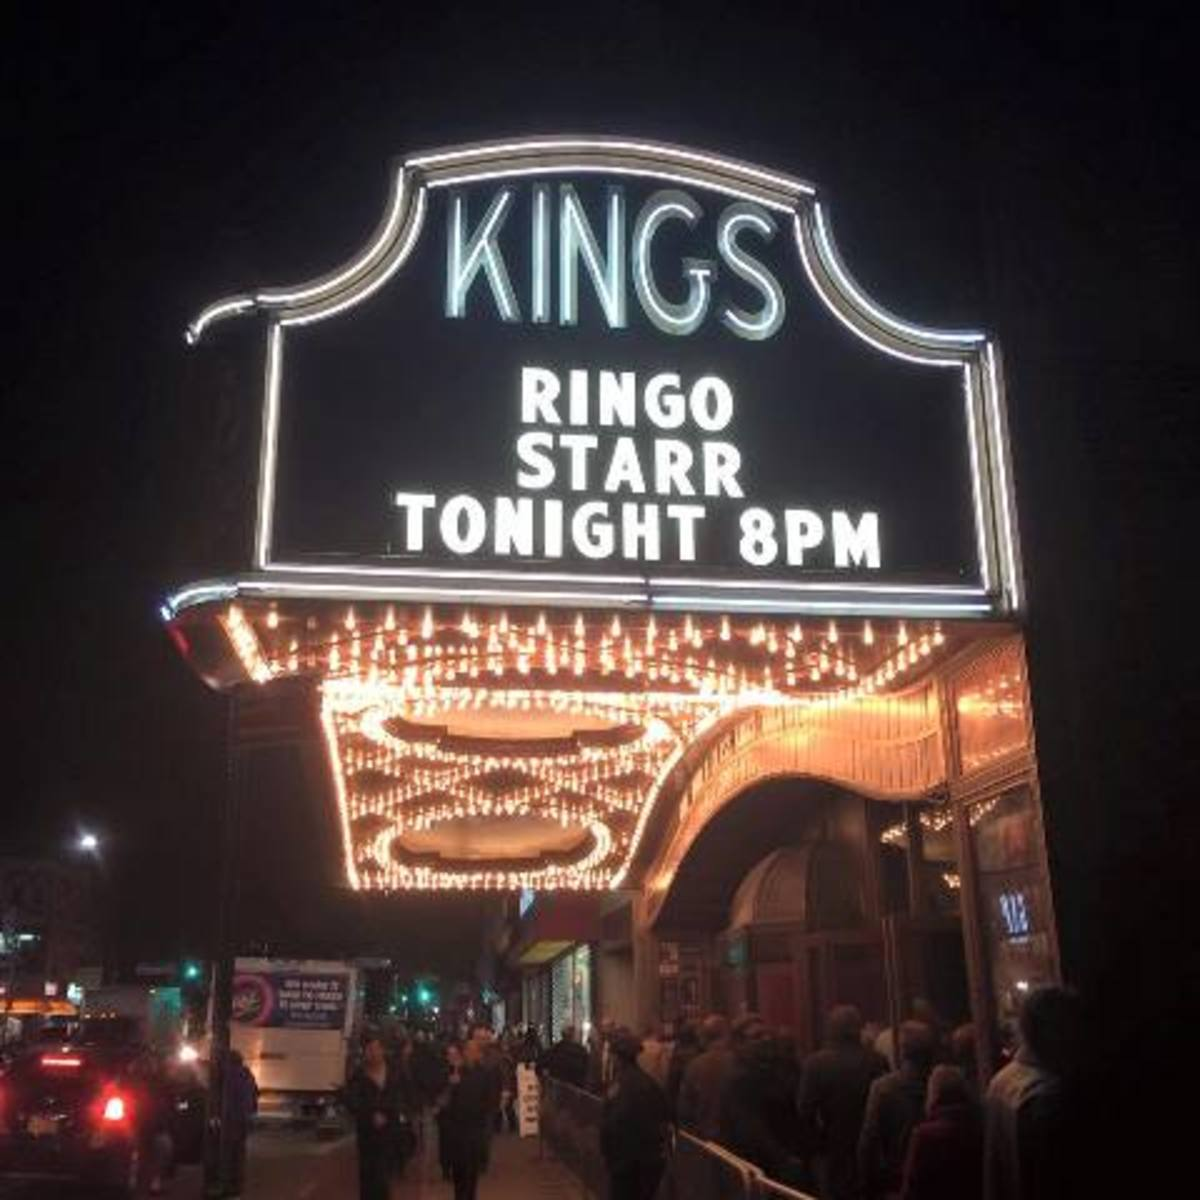 On Halloween night, Brooklyn's beautiful Kings Theatre played host to Ringo Starr and His All-Starr Band for the spectacular finale to their tour.